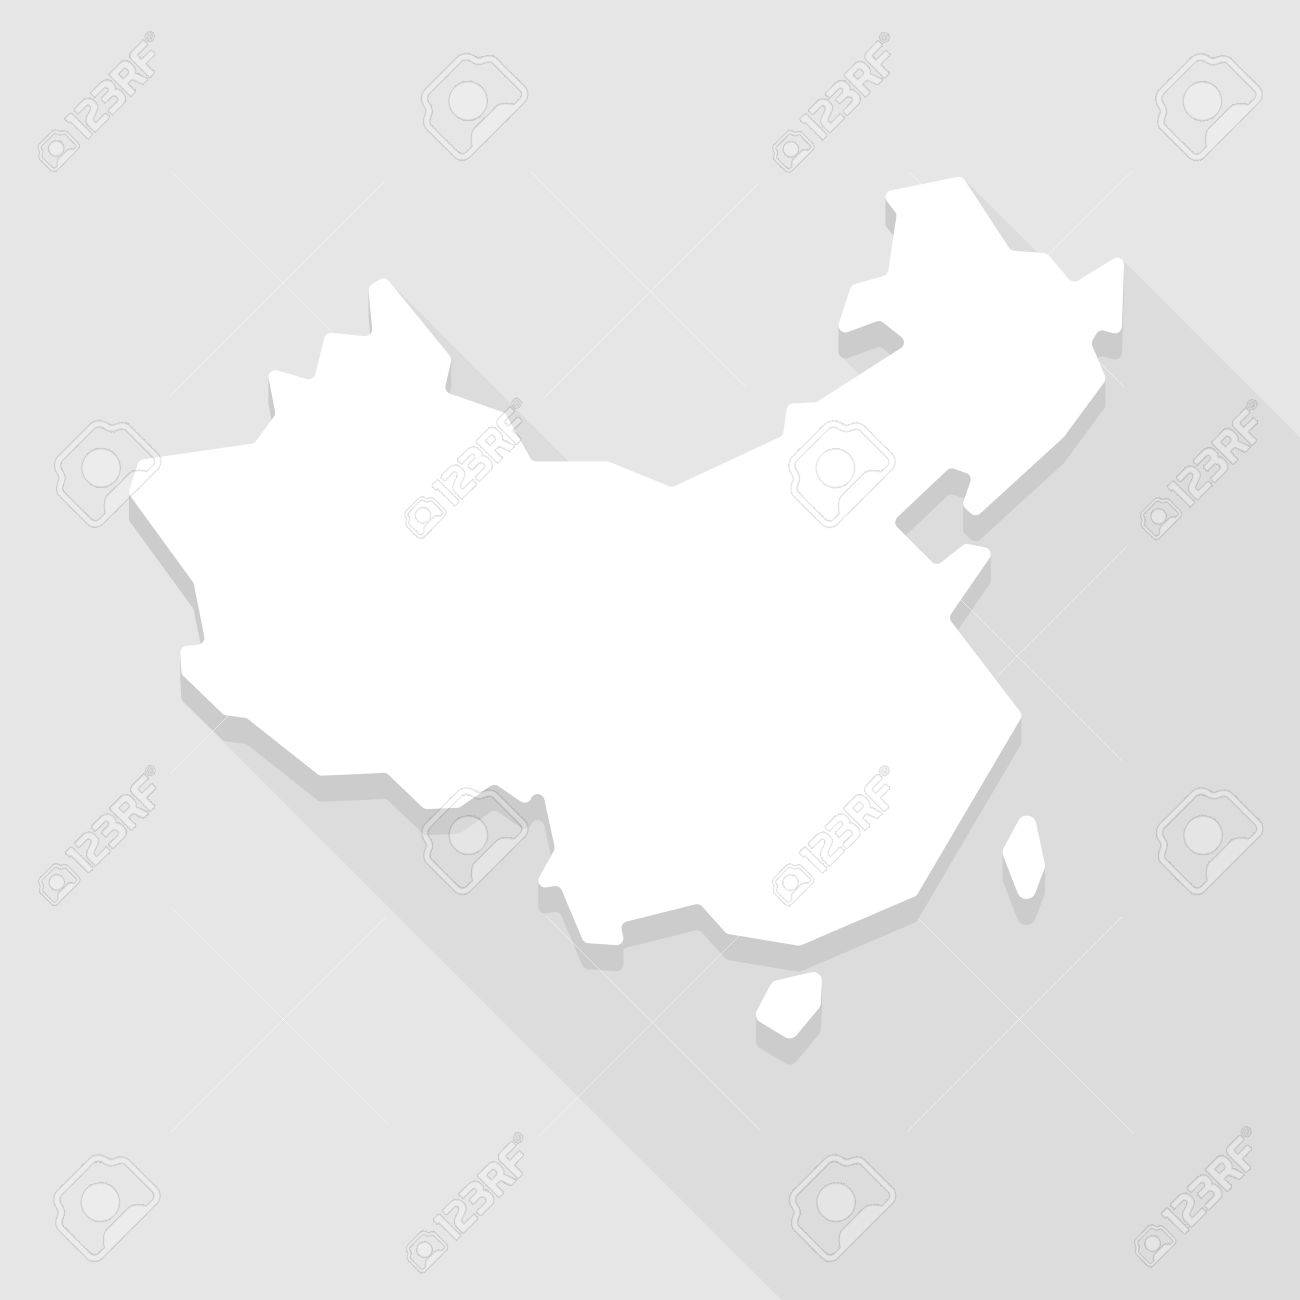 Illustration Of A Grey China Map Icon Royalty Free Cliparts